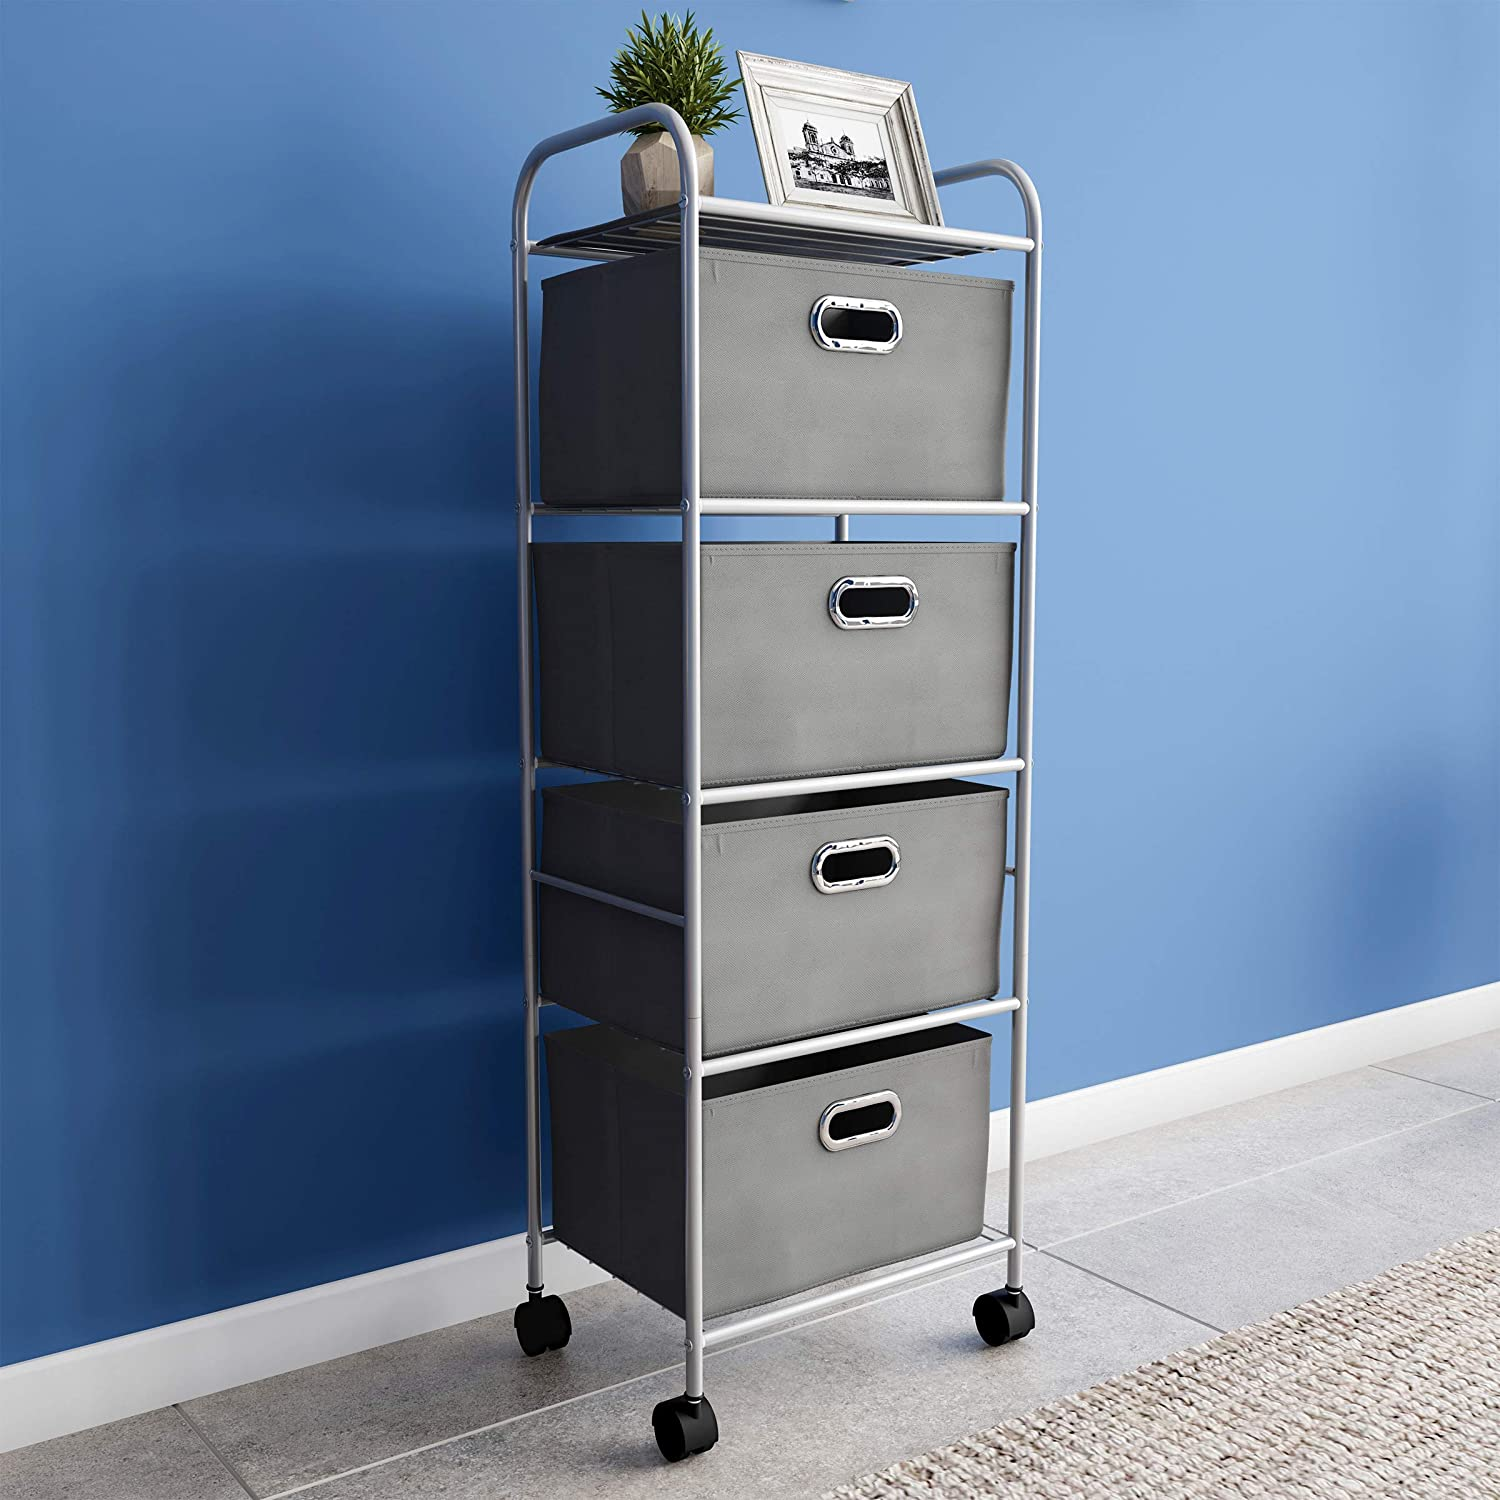 Lavish Home 4 Drawer Rolling Cart on Wheels– Portable Metal Storage Organizer with Fabric Bins for Home, Office, Dorm Room and Classroom